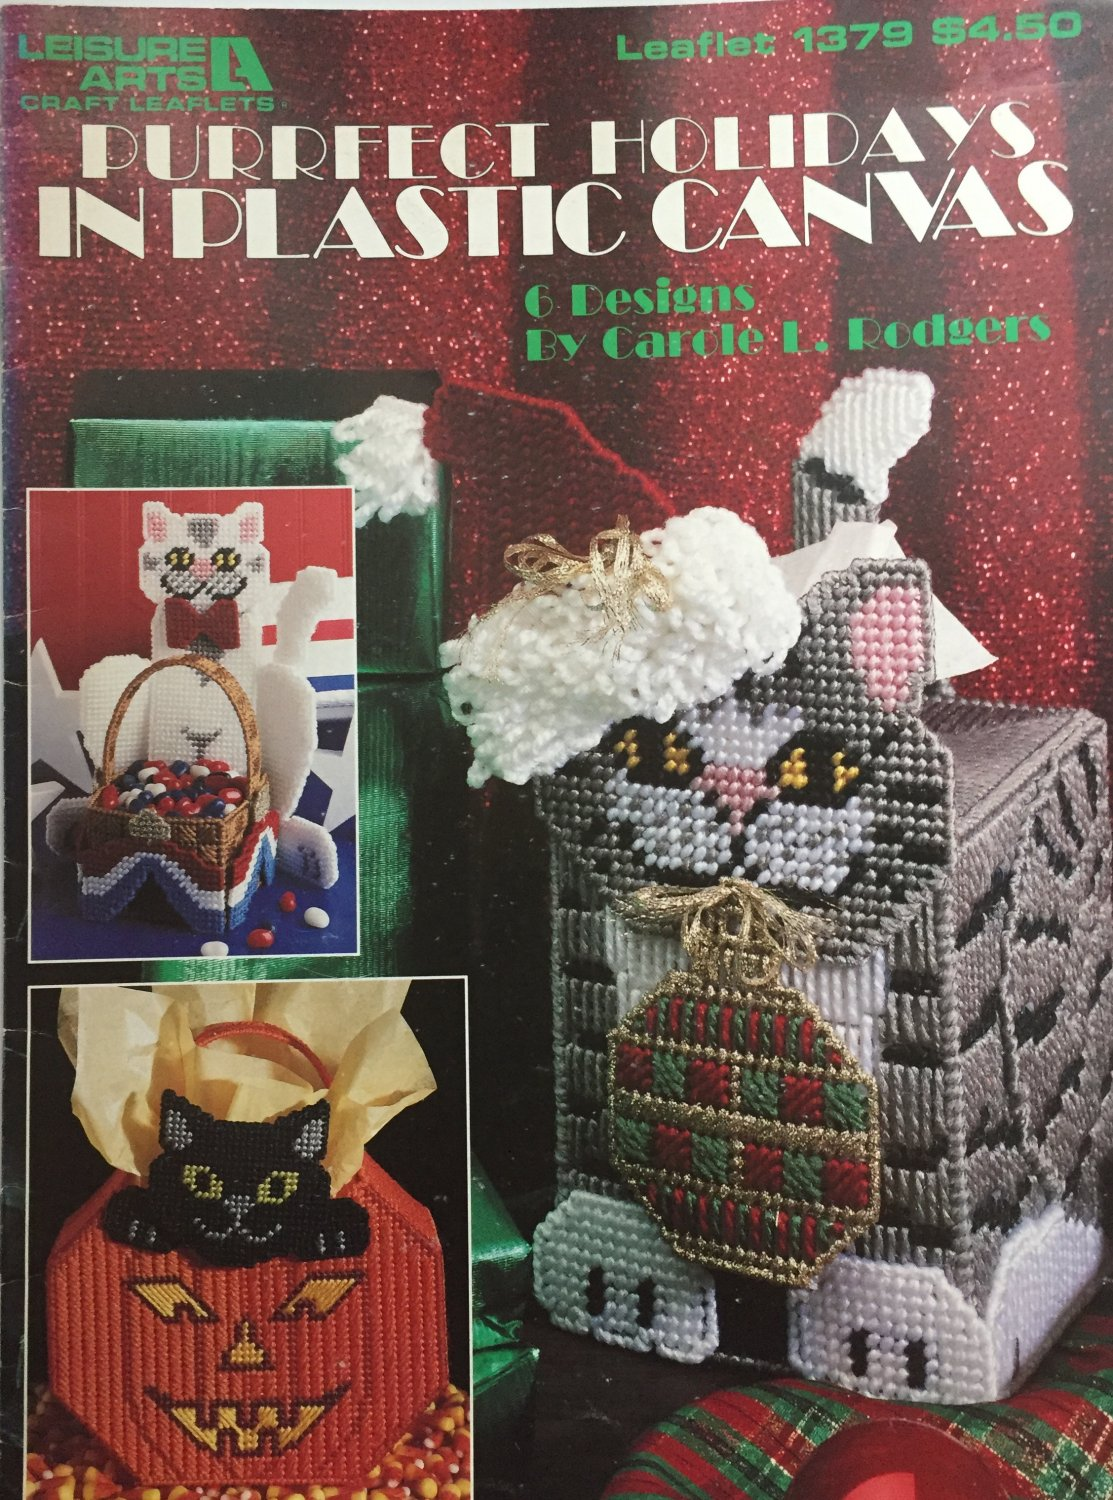 Plastic Canvas Purrfect Holidays Leisure Arts 1379 Features Christmas and other holidays